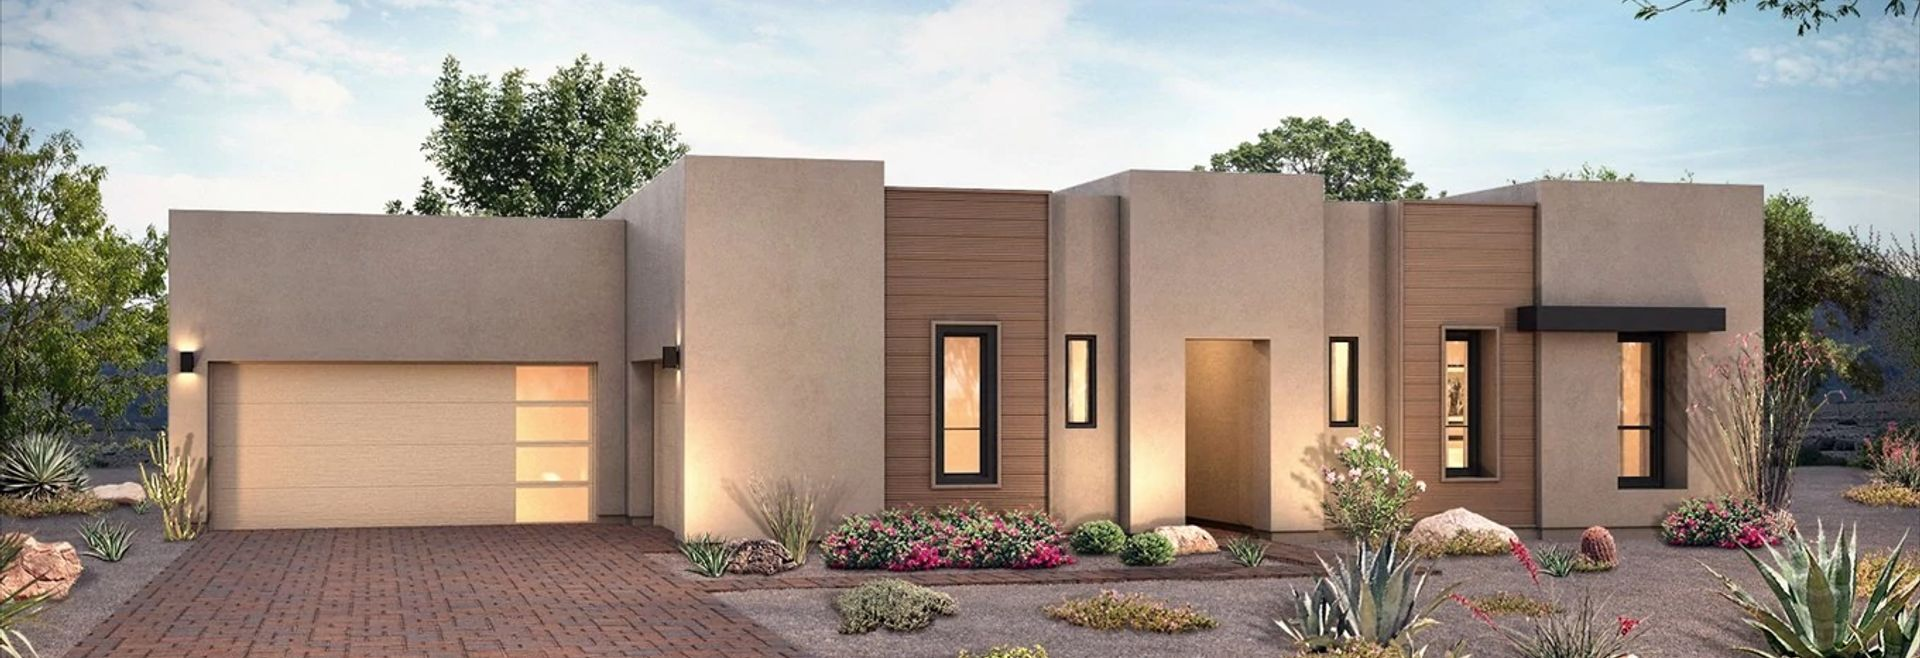 Exterior of Plan 7023 at Prelude at Storyrock in Scottsdale, Arizona